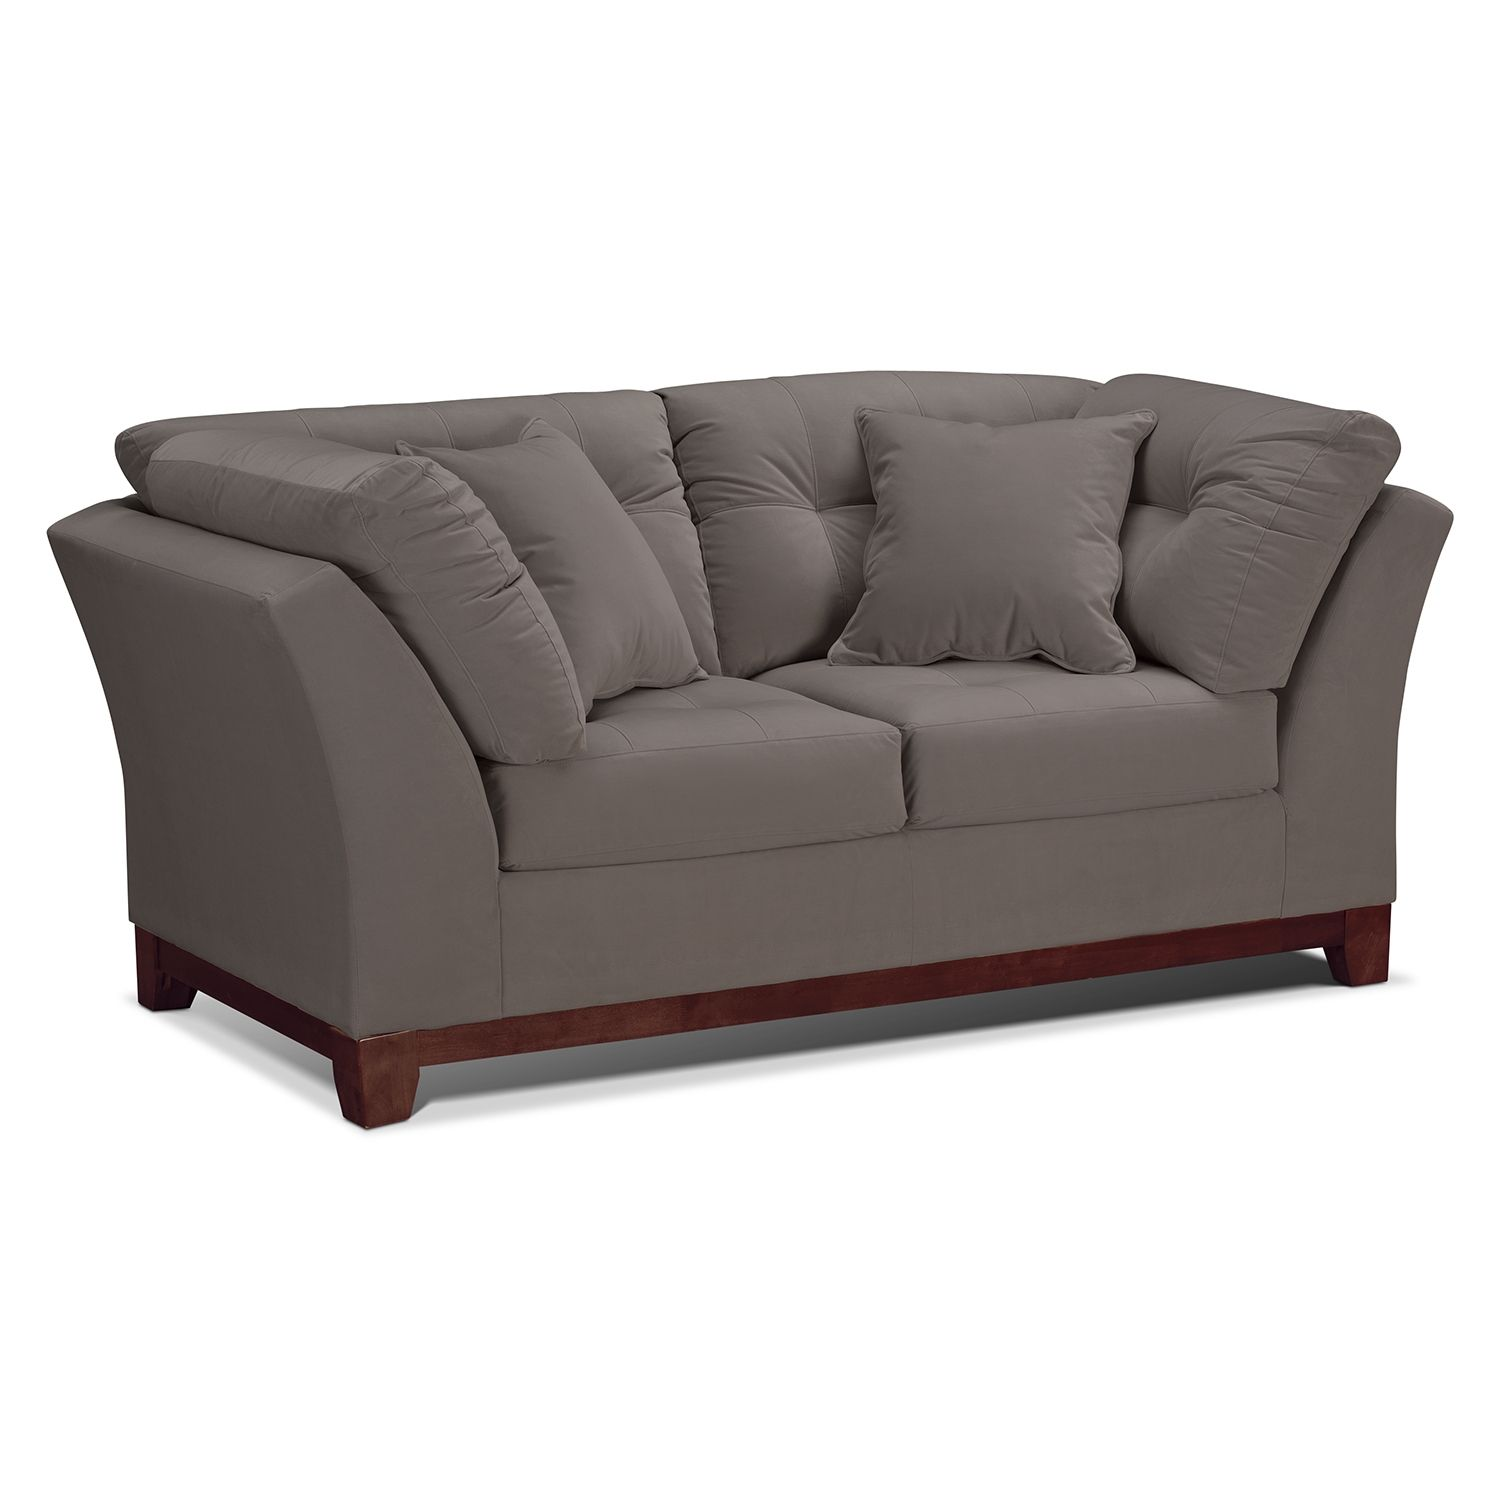 Living room furniture solace gray loveseat